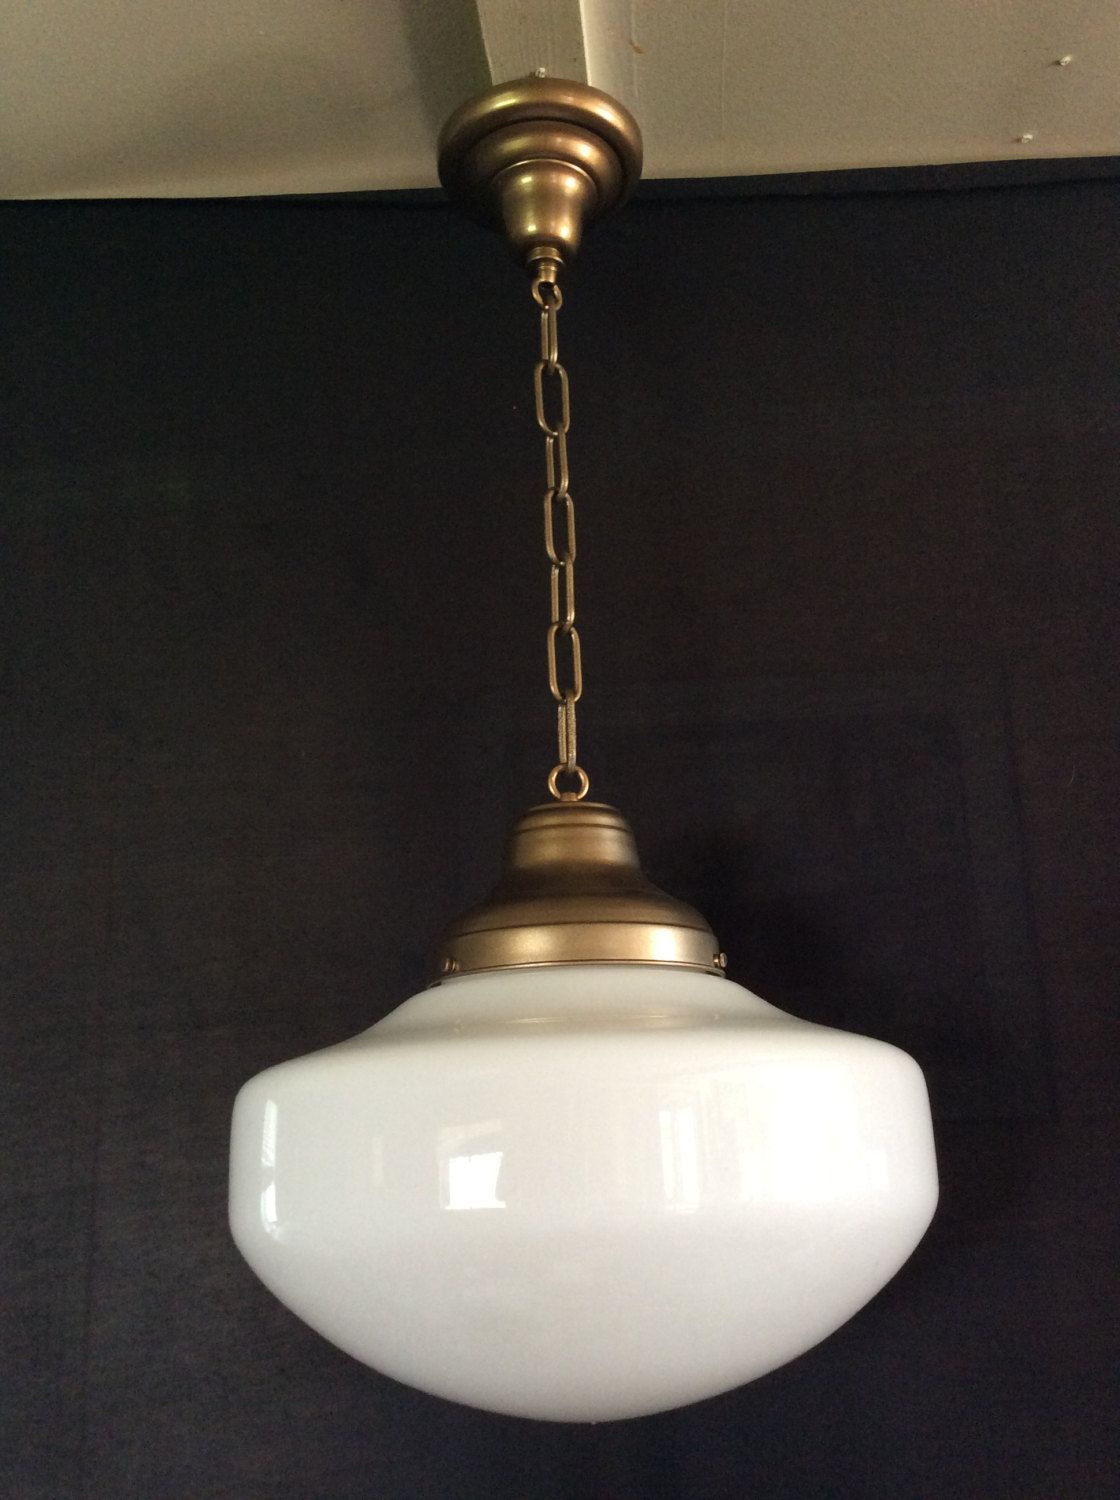 Antique Hanging Church Industrial Or School House Pendant Light Fixture 1920 Pendant Light Fixtures Pendant Light Hanging Light Fixtures